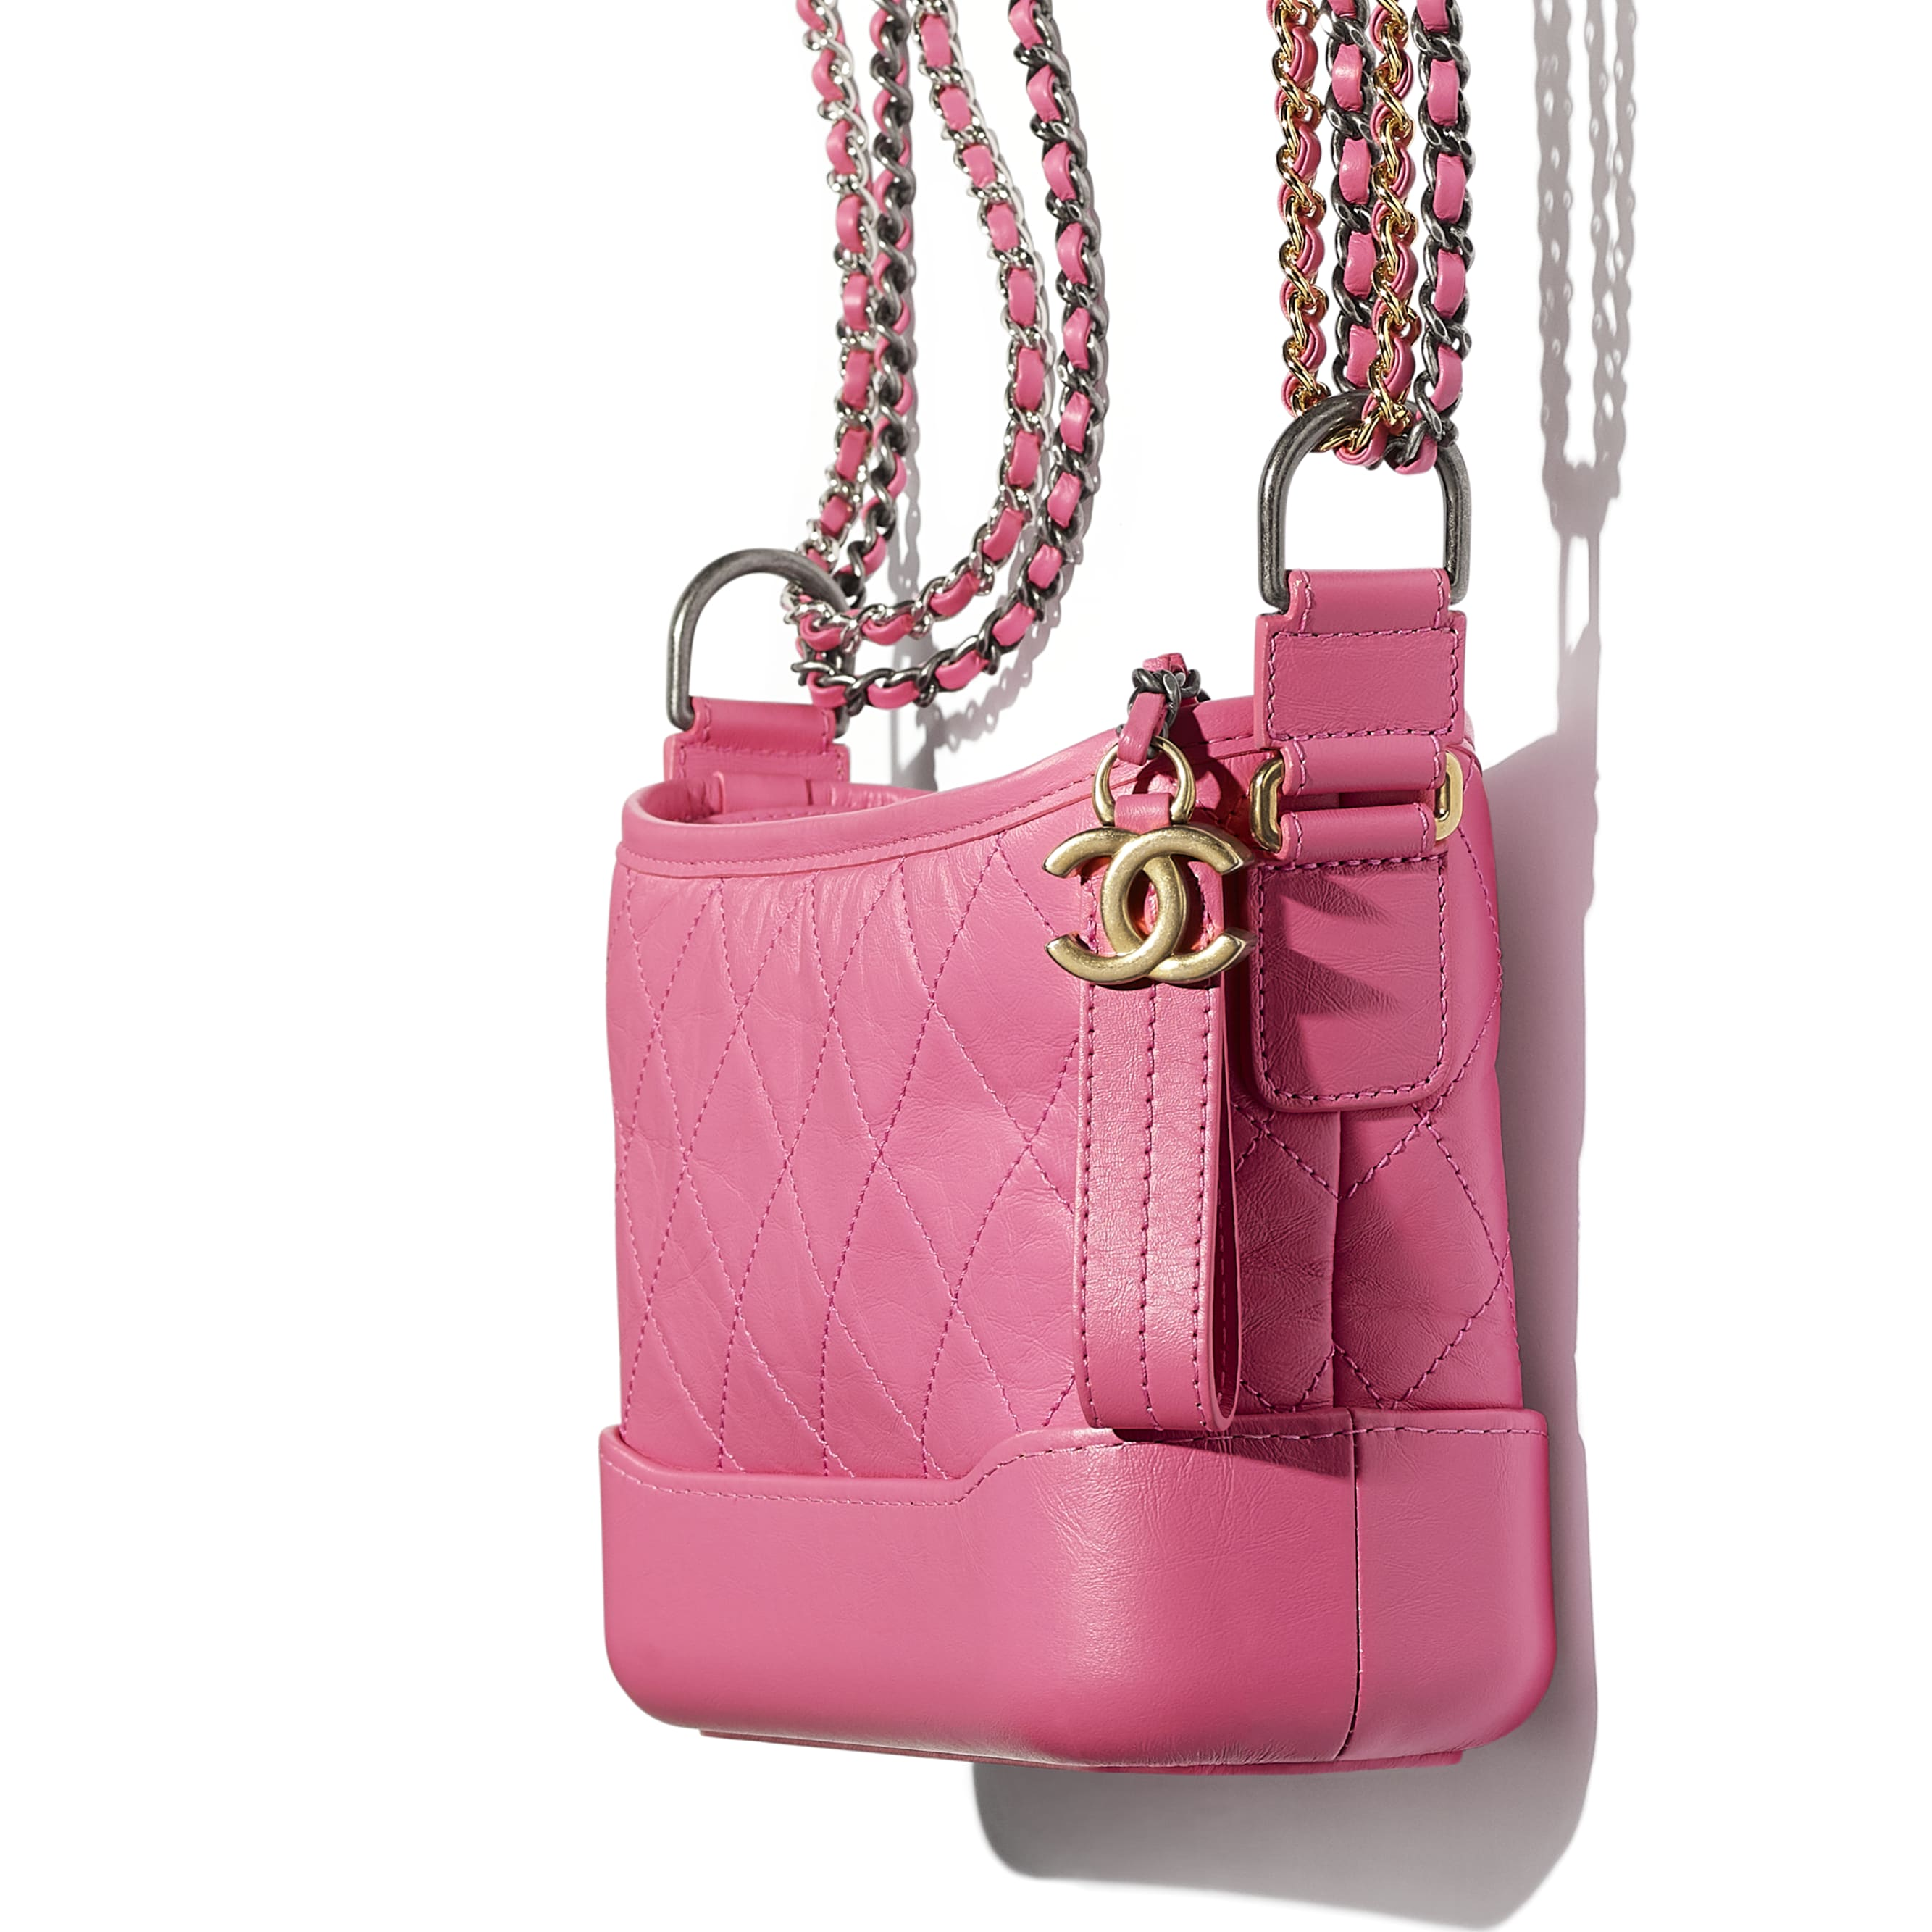 CHANEL'S GABRIELLE Small Hobo Bag - Pink - Aged Calfskin, Smooth Calfskin, Silver-Tone & Gold-Tone Metal - Extra view - see standard sized version